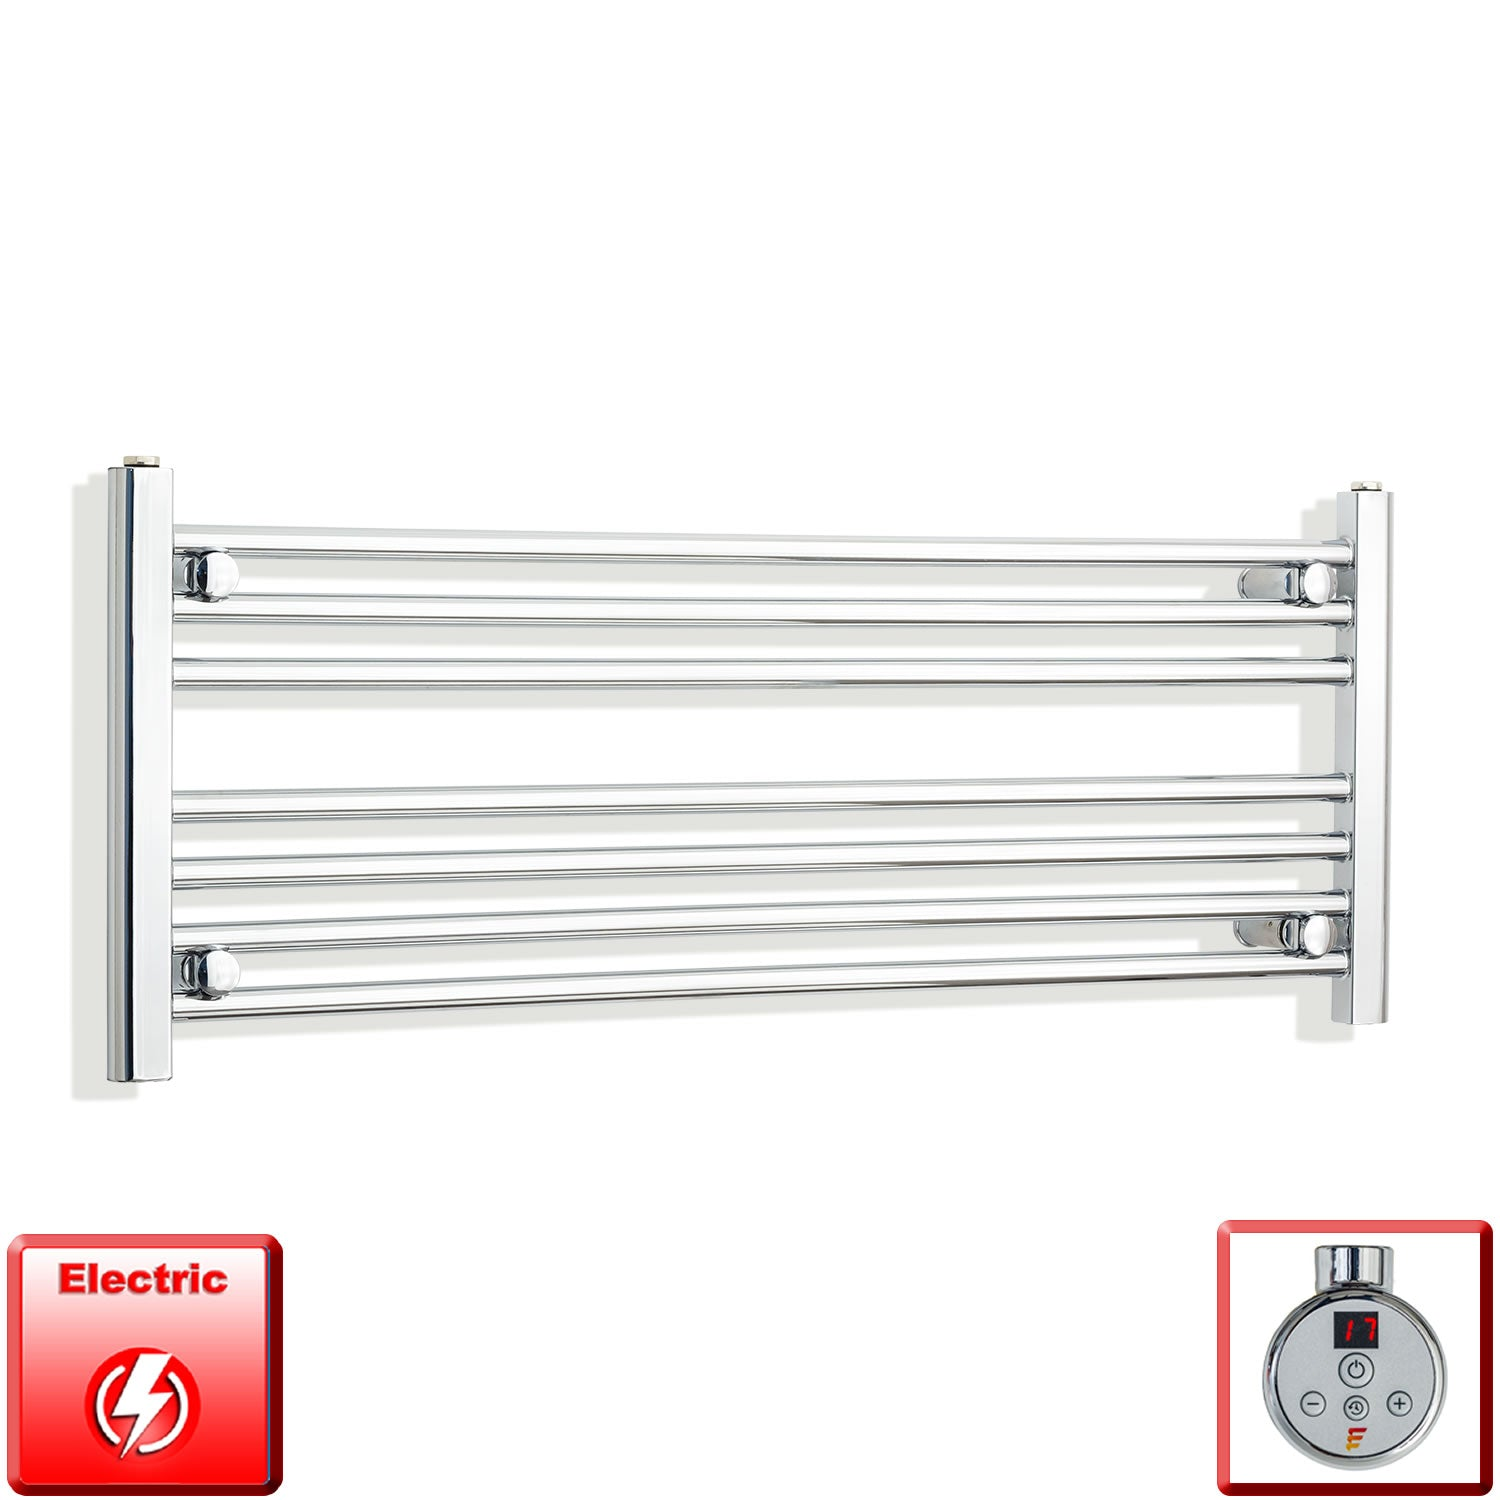 950mm Wide 400mm High Flat Chrome Pre-Filled Electric Heated Towel Rail Radiator HTR